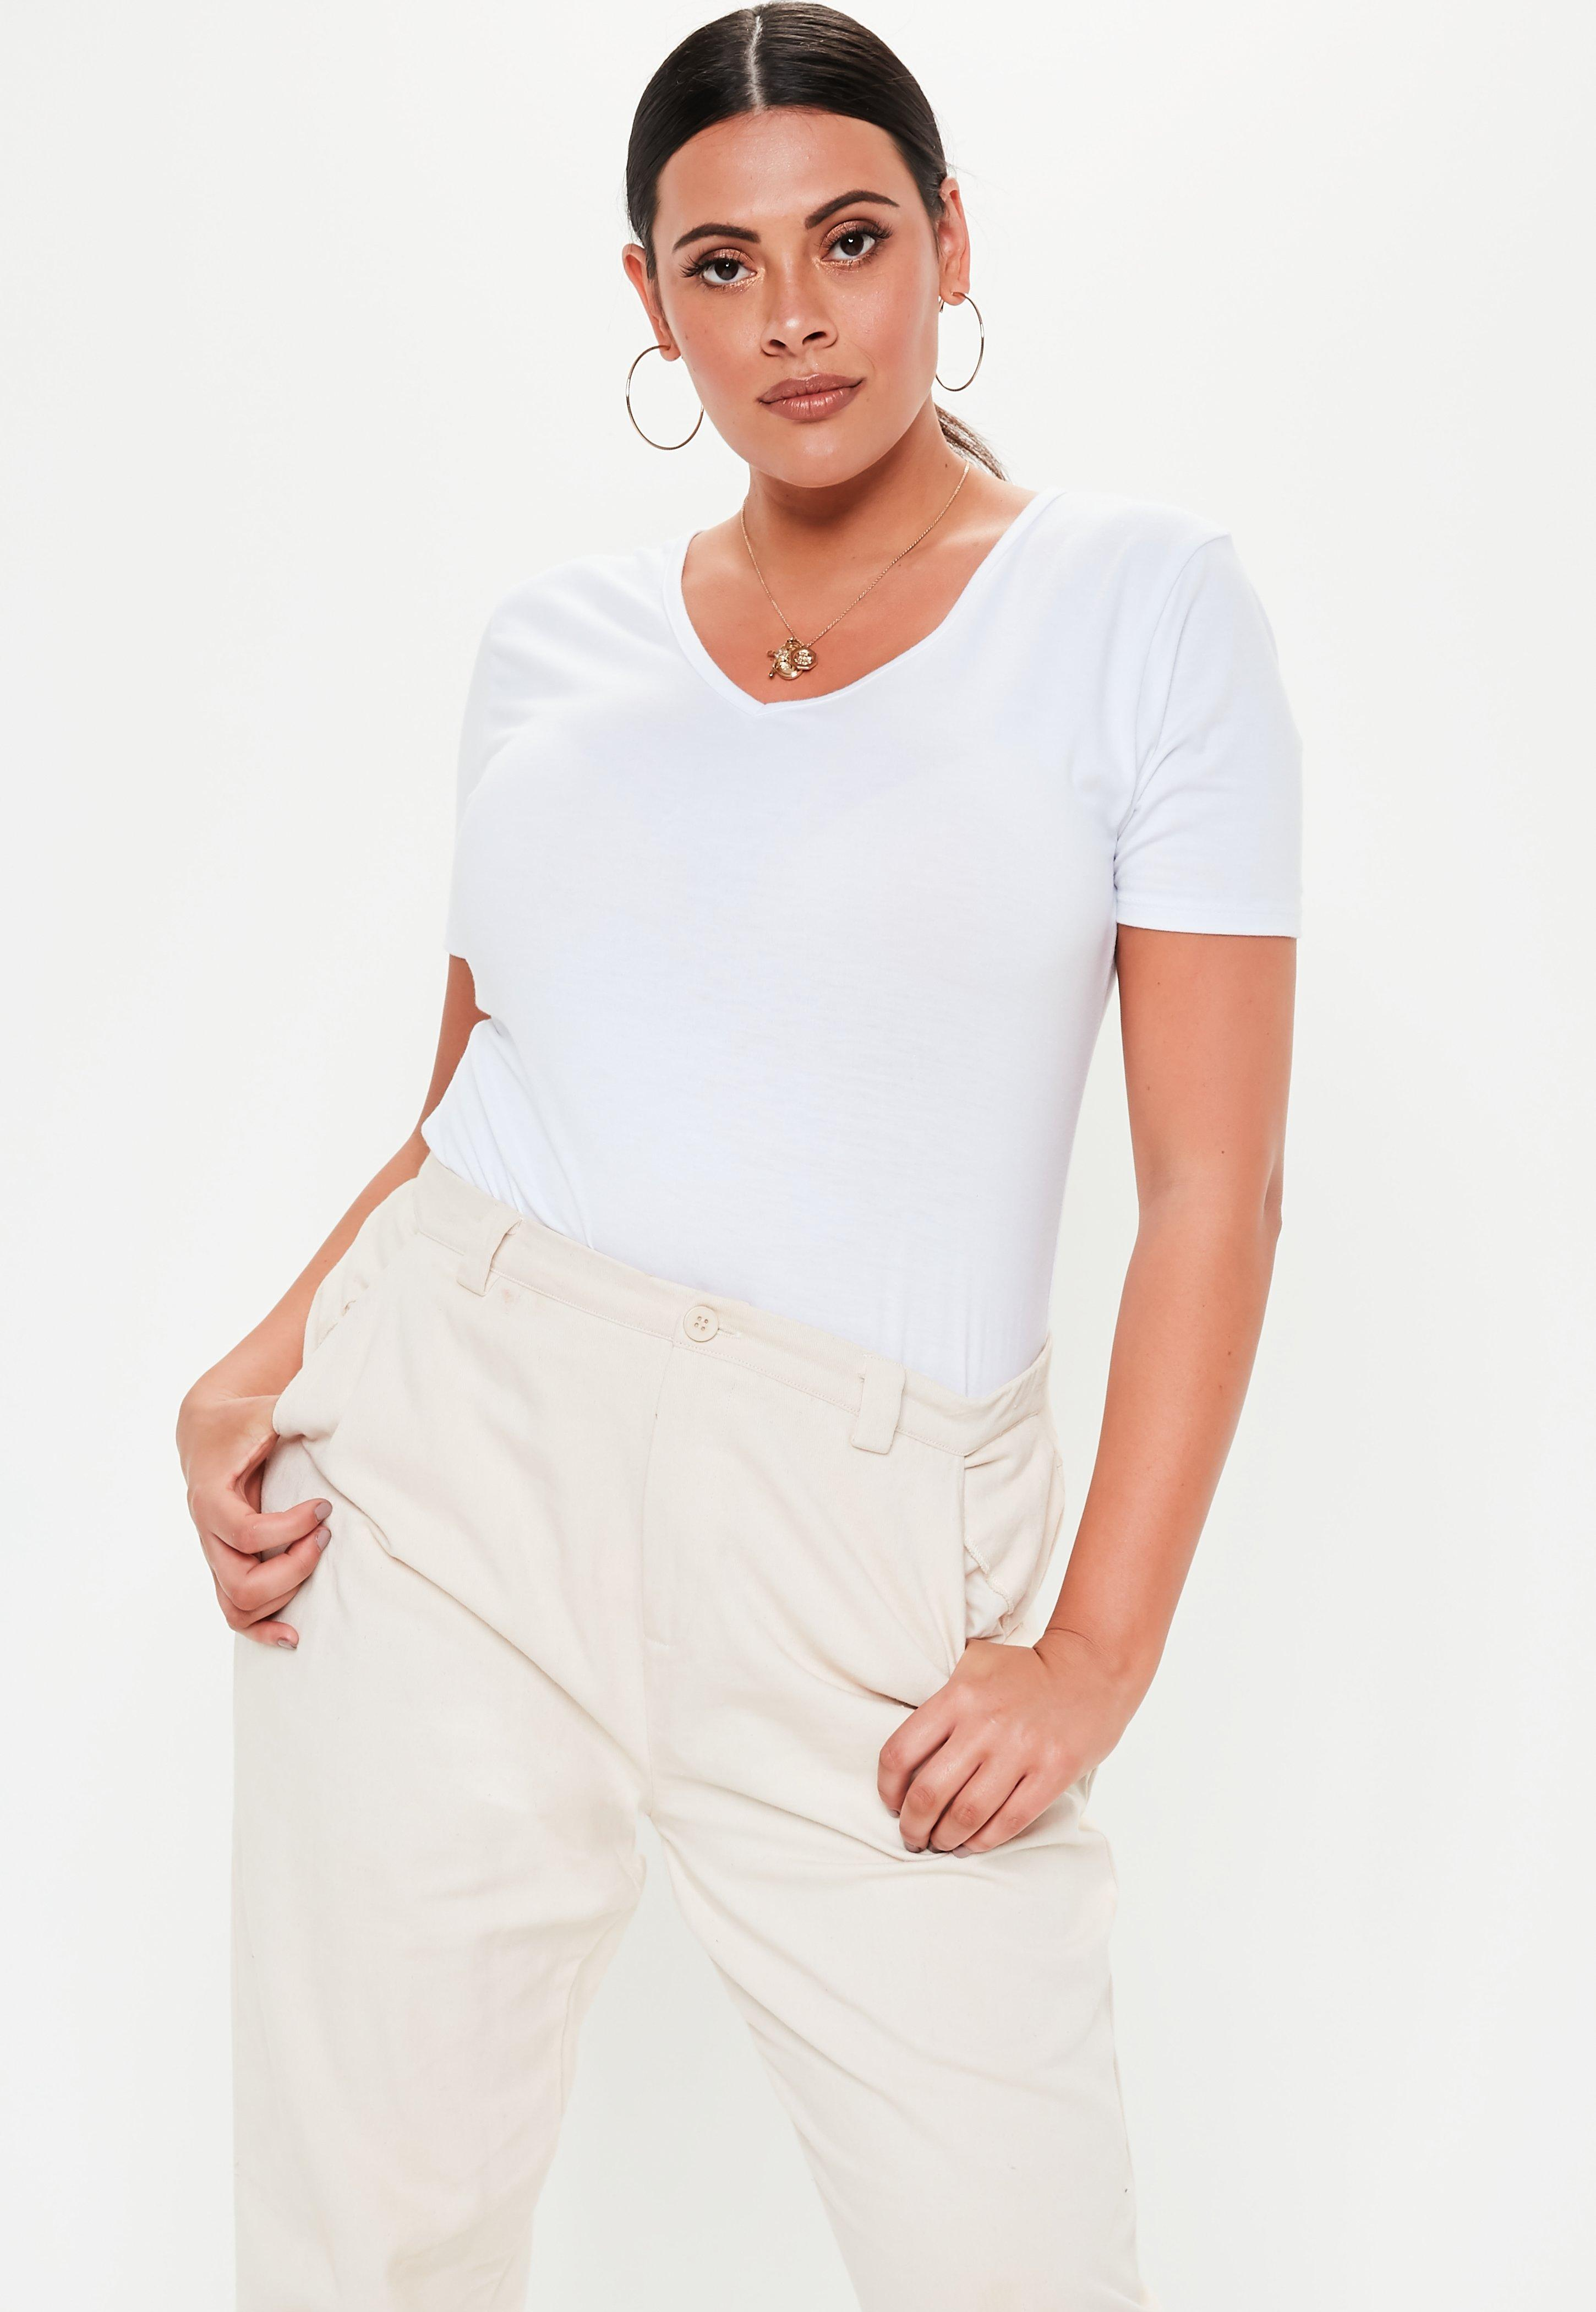 ddd3c93a47 T-Shirts | Women's T-Shirts & Tees - Missguided